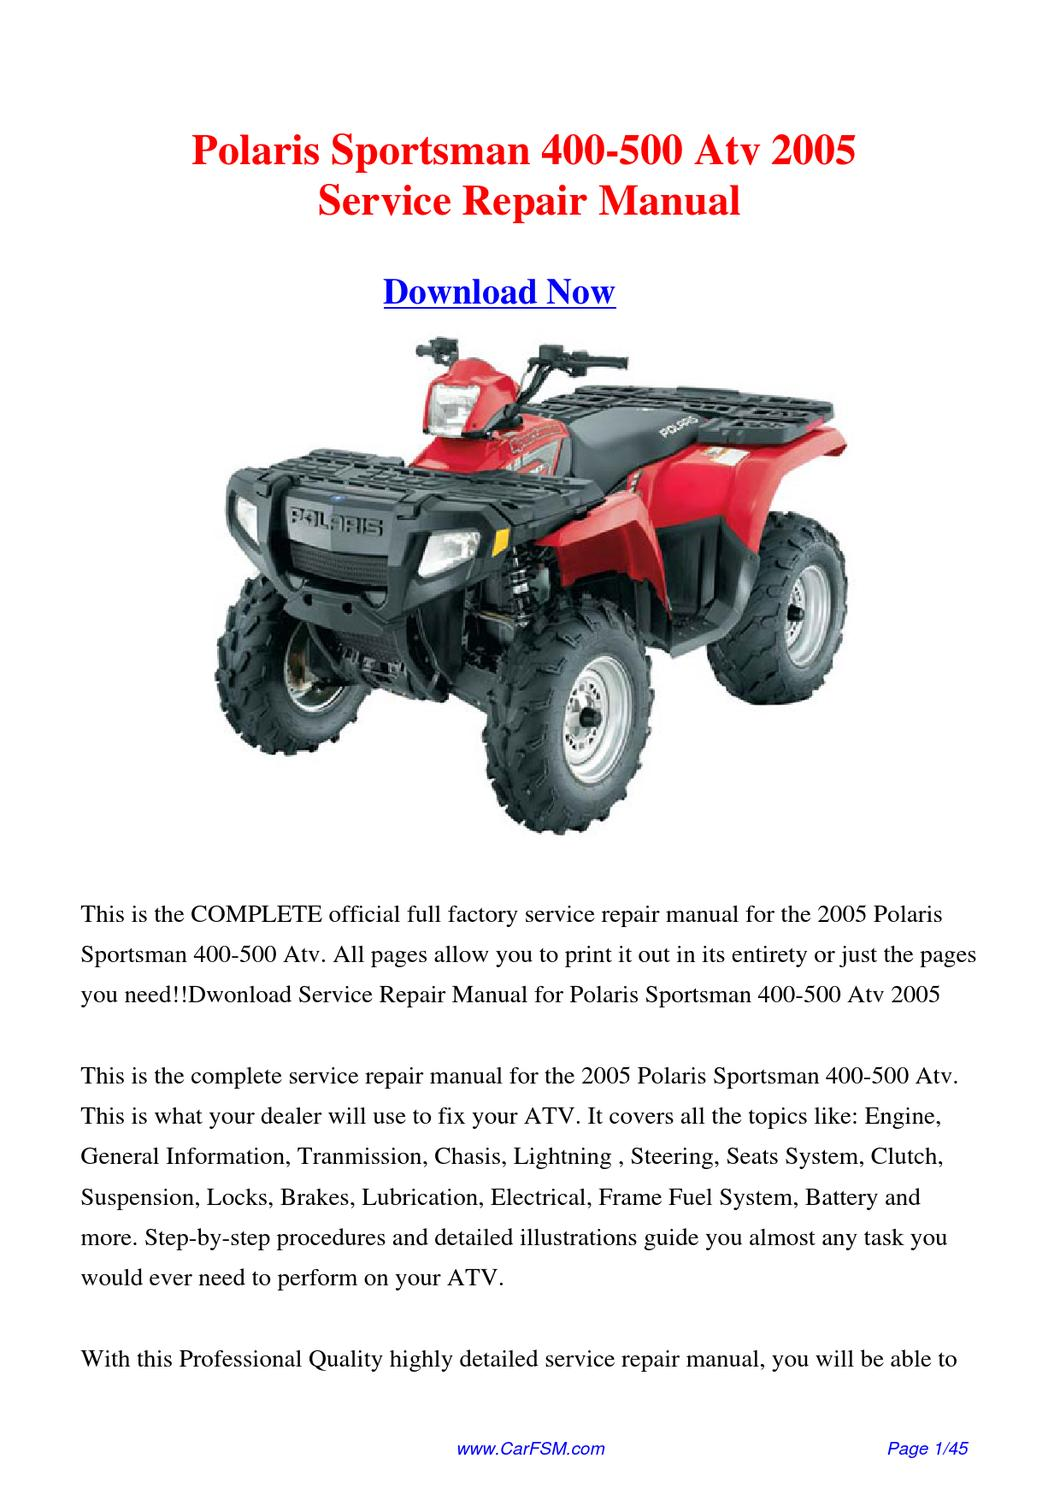 2002 polaris Ranger pdf manual